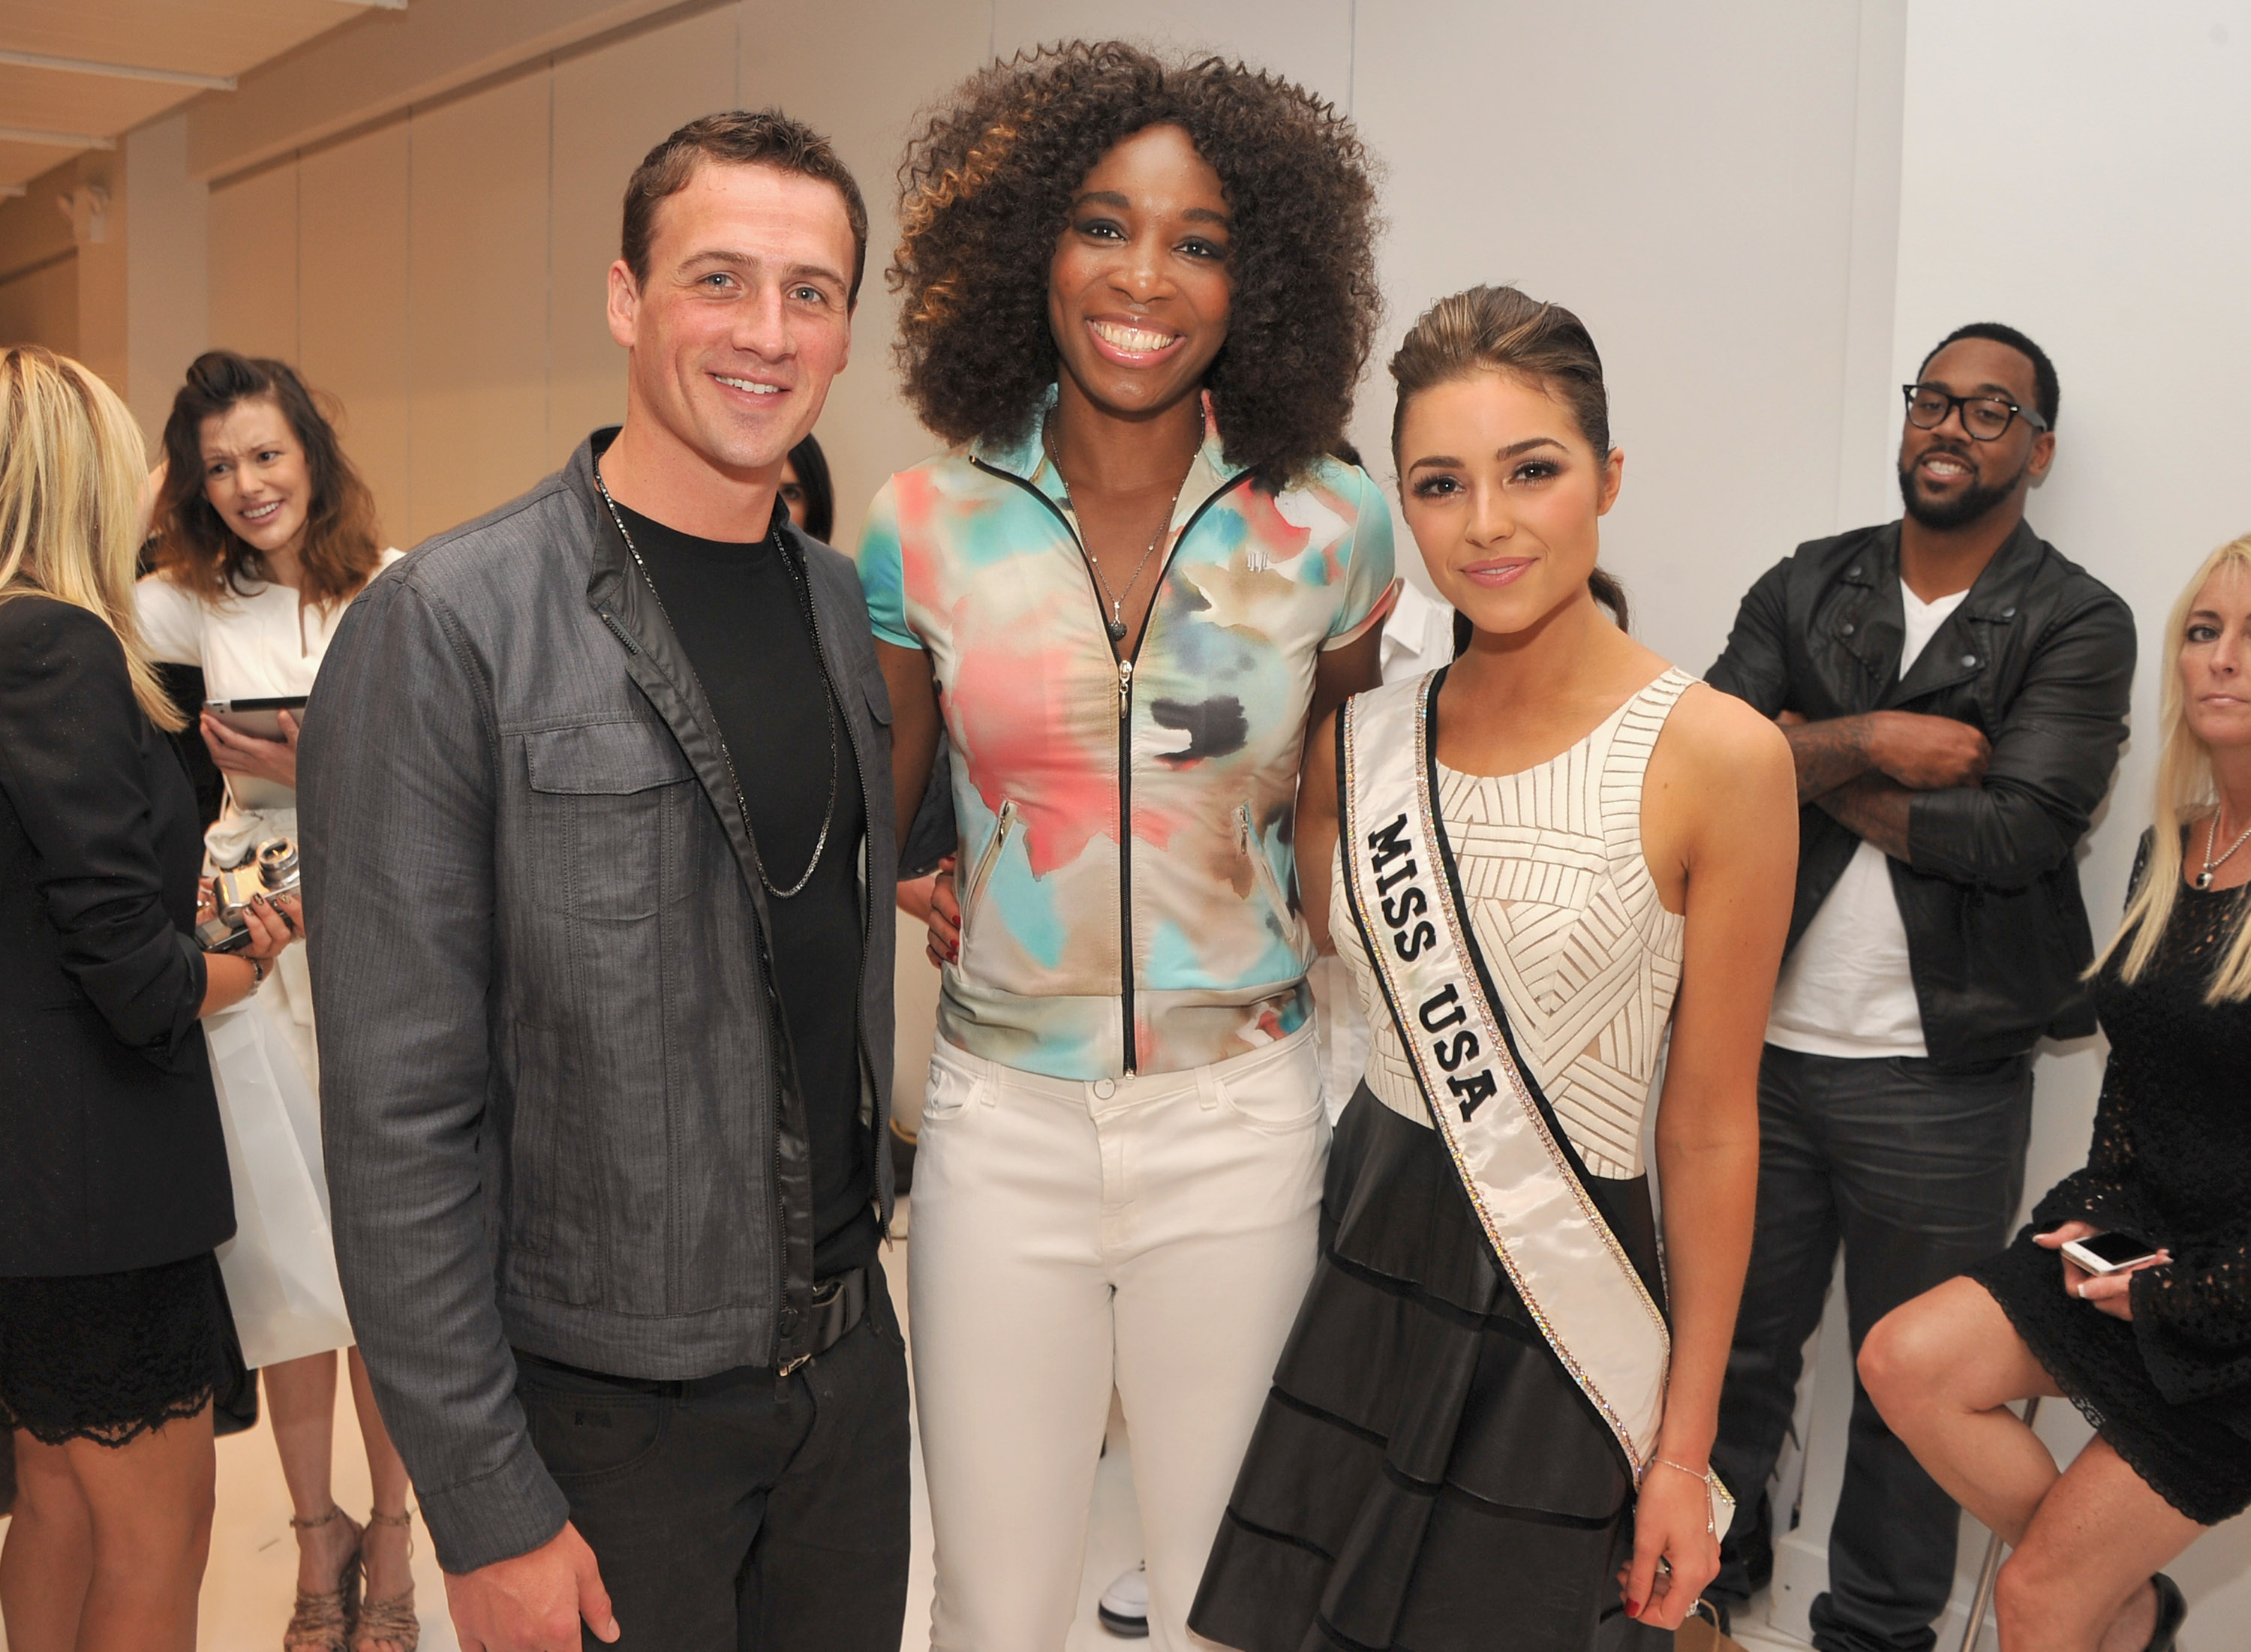 ryan lochte dating olivia culpo Olympic swimmer ryan lochte makes waves as he poses with miss usa olivia culpo at new ryan seacrest and girlfriend shayna taylor dress casually in sweaters.